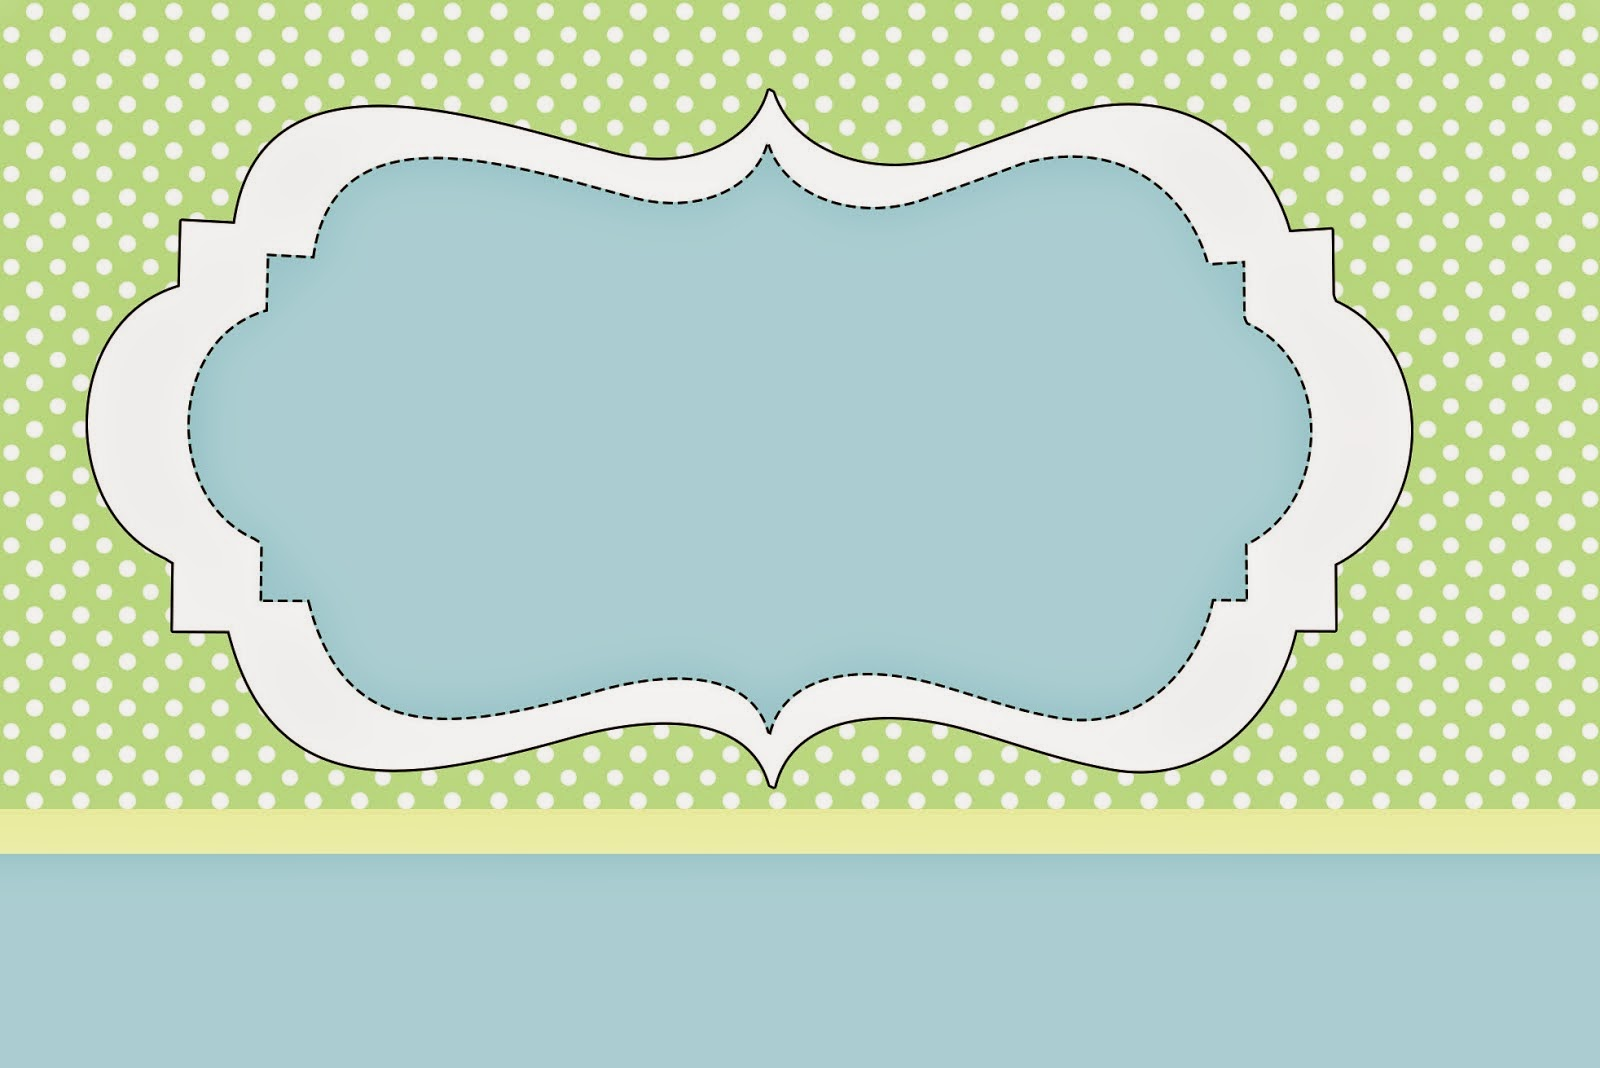 Green and Light Blue Free Printable Invitations, Labels or Cards.